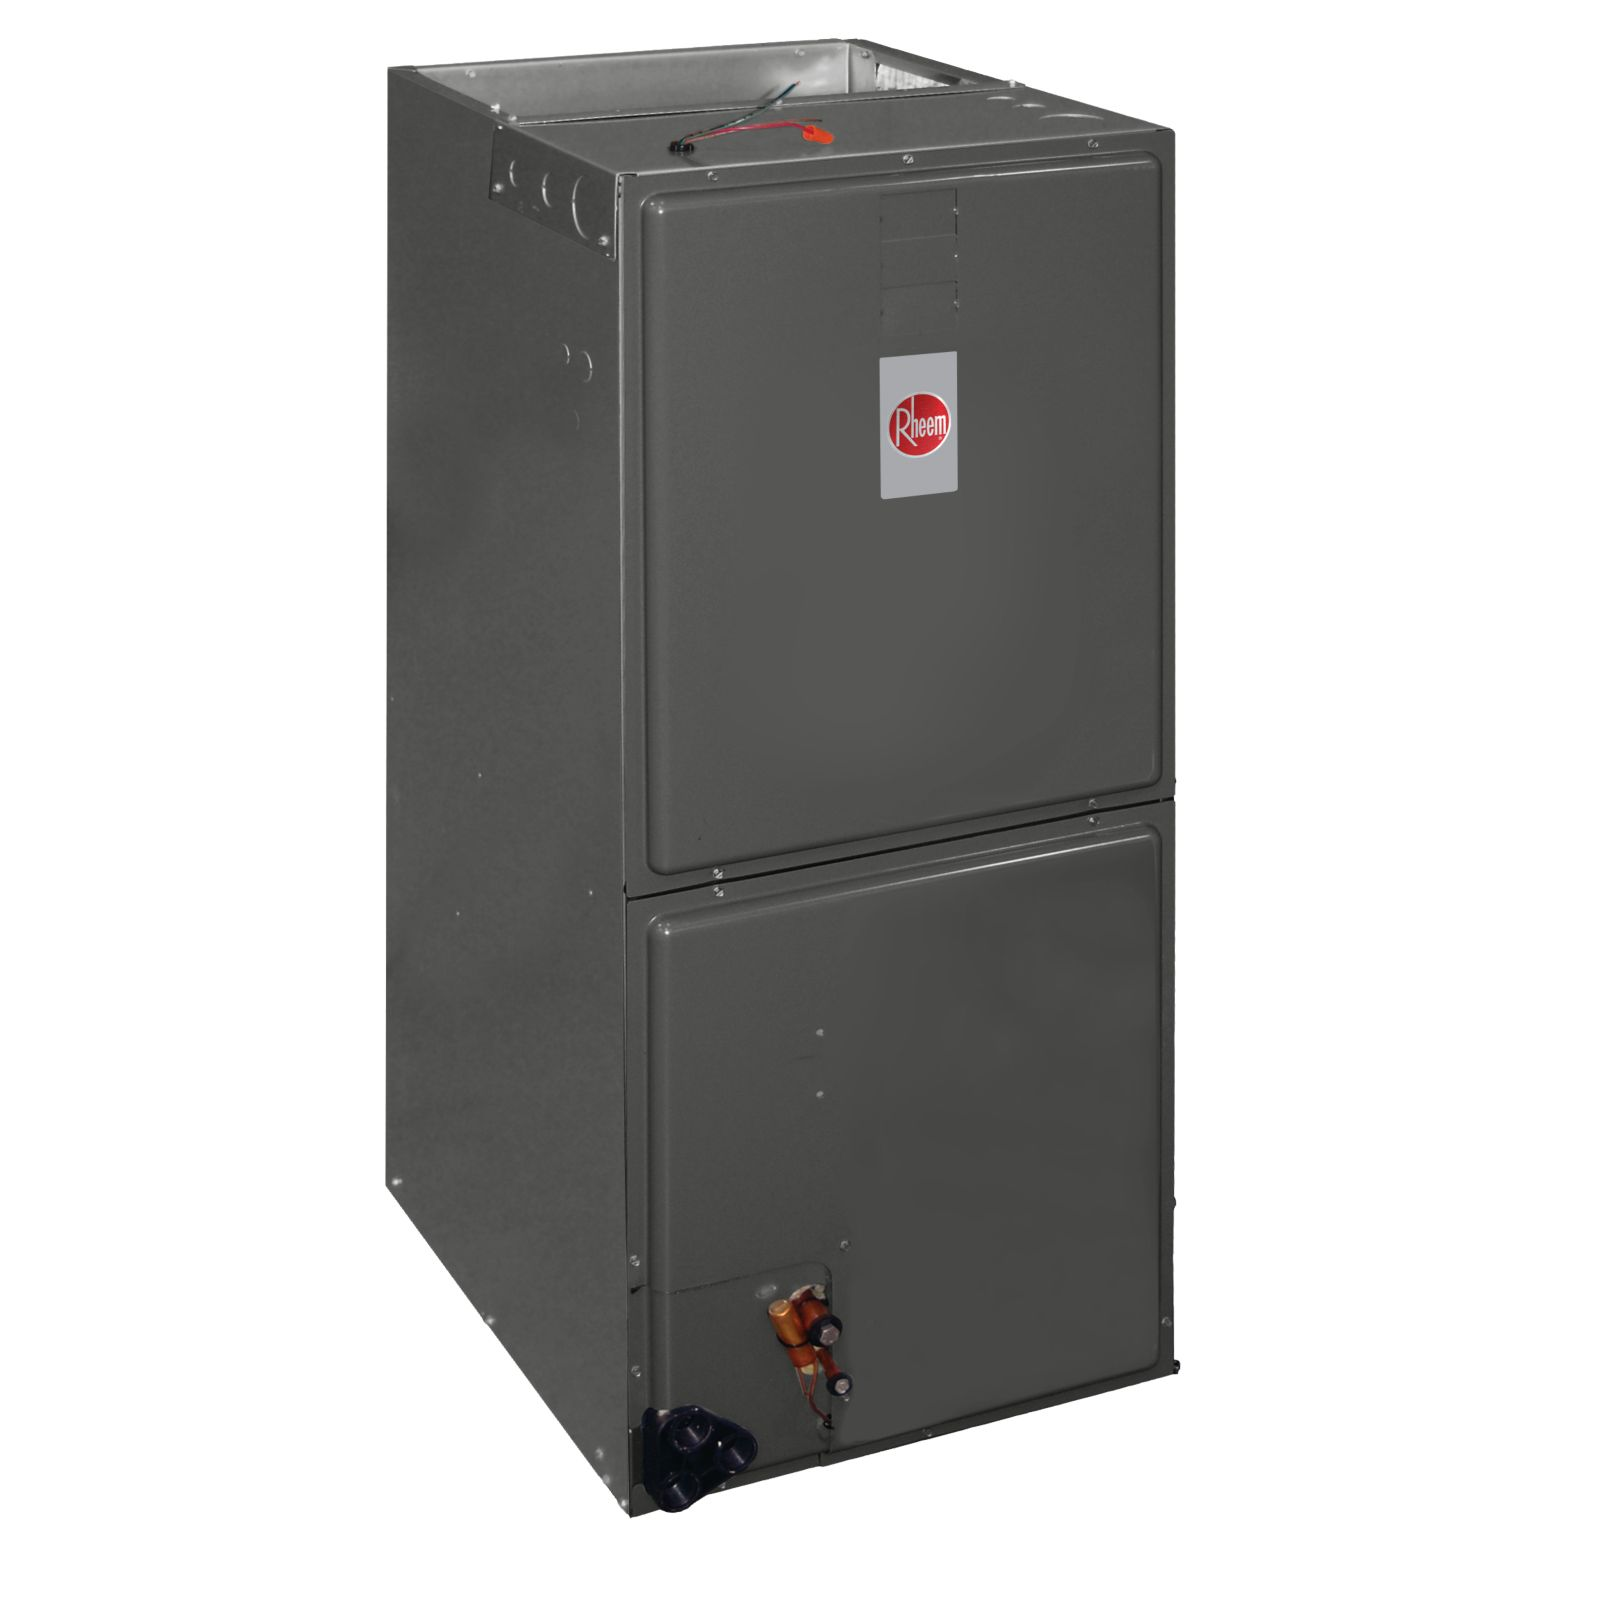 Rheem RHPN-HM6024JC - Premium 5 Ton Multiposition High Efficiency Air Handler with Comfort Control - Up to 18 SEER - R410A